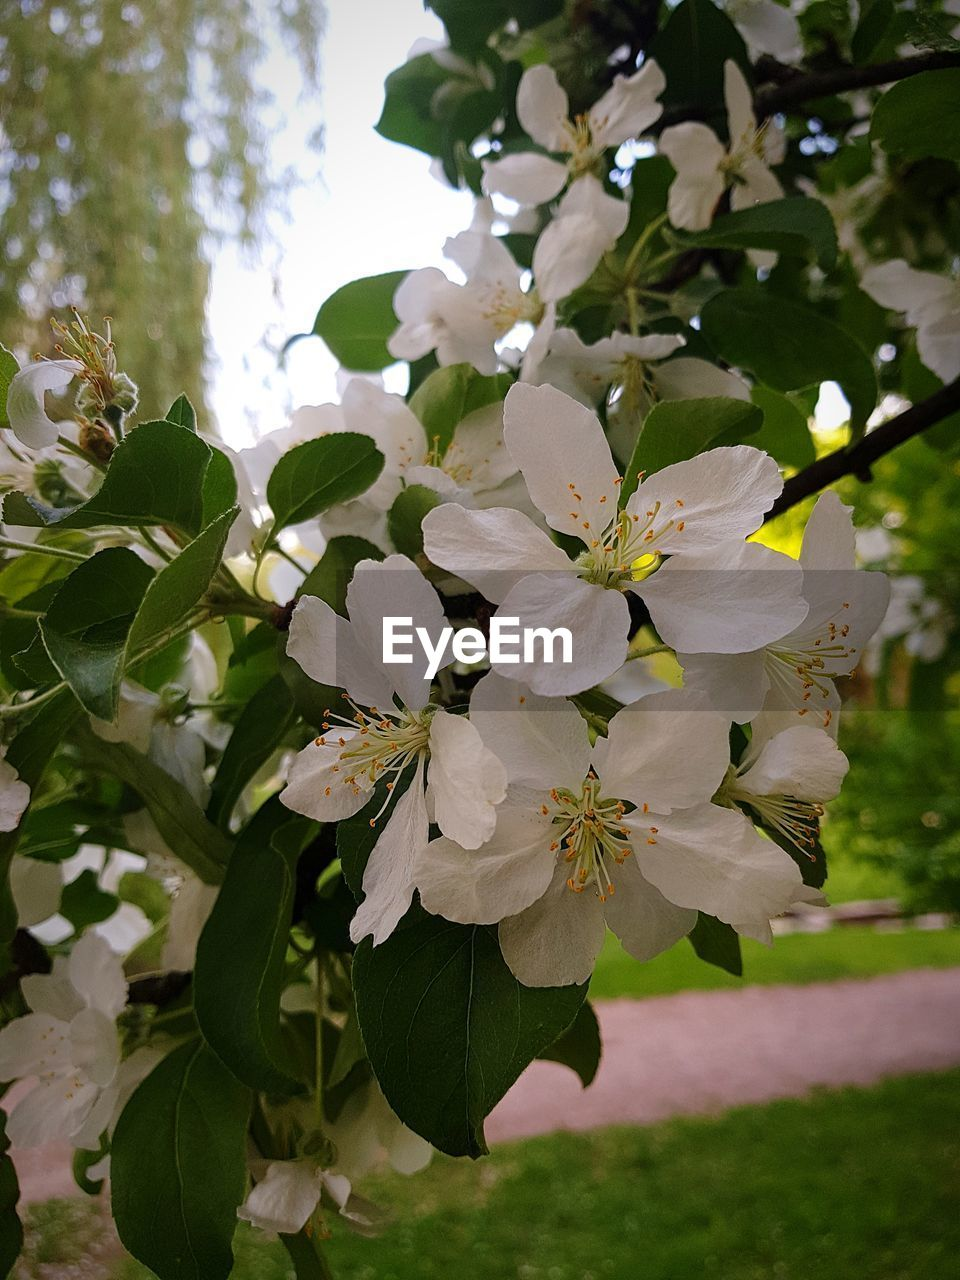 plant, flower, flowering plant, beauty in nature, growth, fragility, vulnerability, freshness, petal, close-up, leaf, plant part, focus on foreground, white color, flower head, inflorescence, nature, day, blossom, tree, no people, outdoors, springtime, pollen, bunch of flowers, cherry blossom